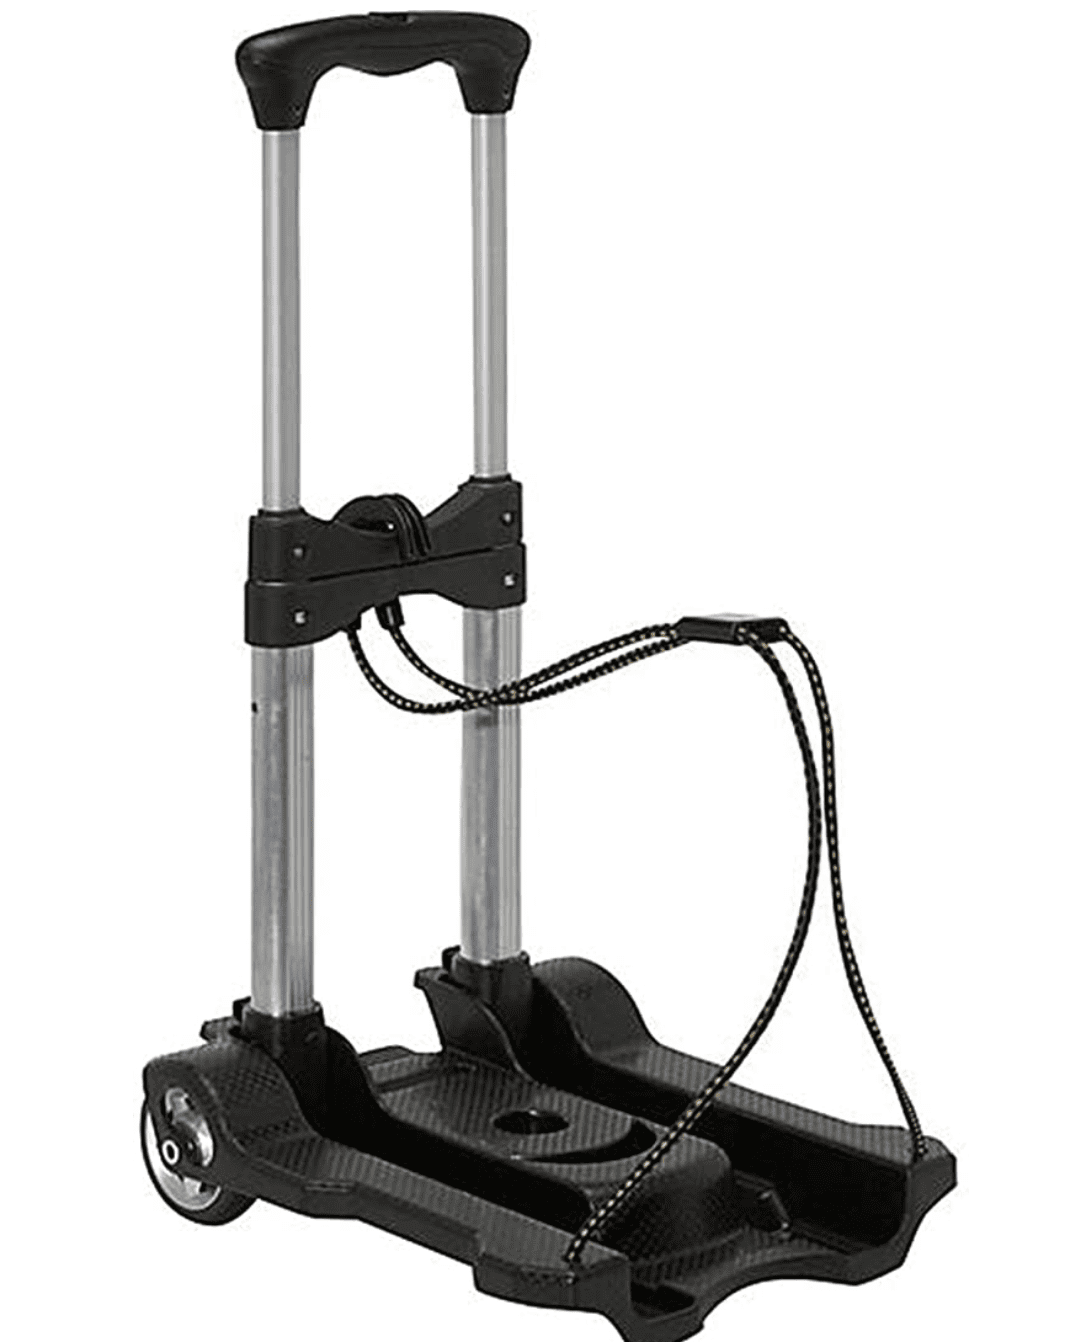 Amazon: Samsonite Luggage Cart for .3